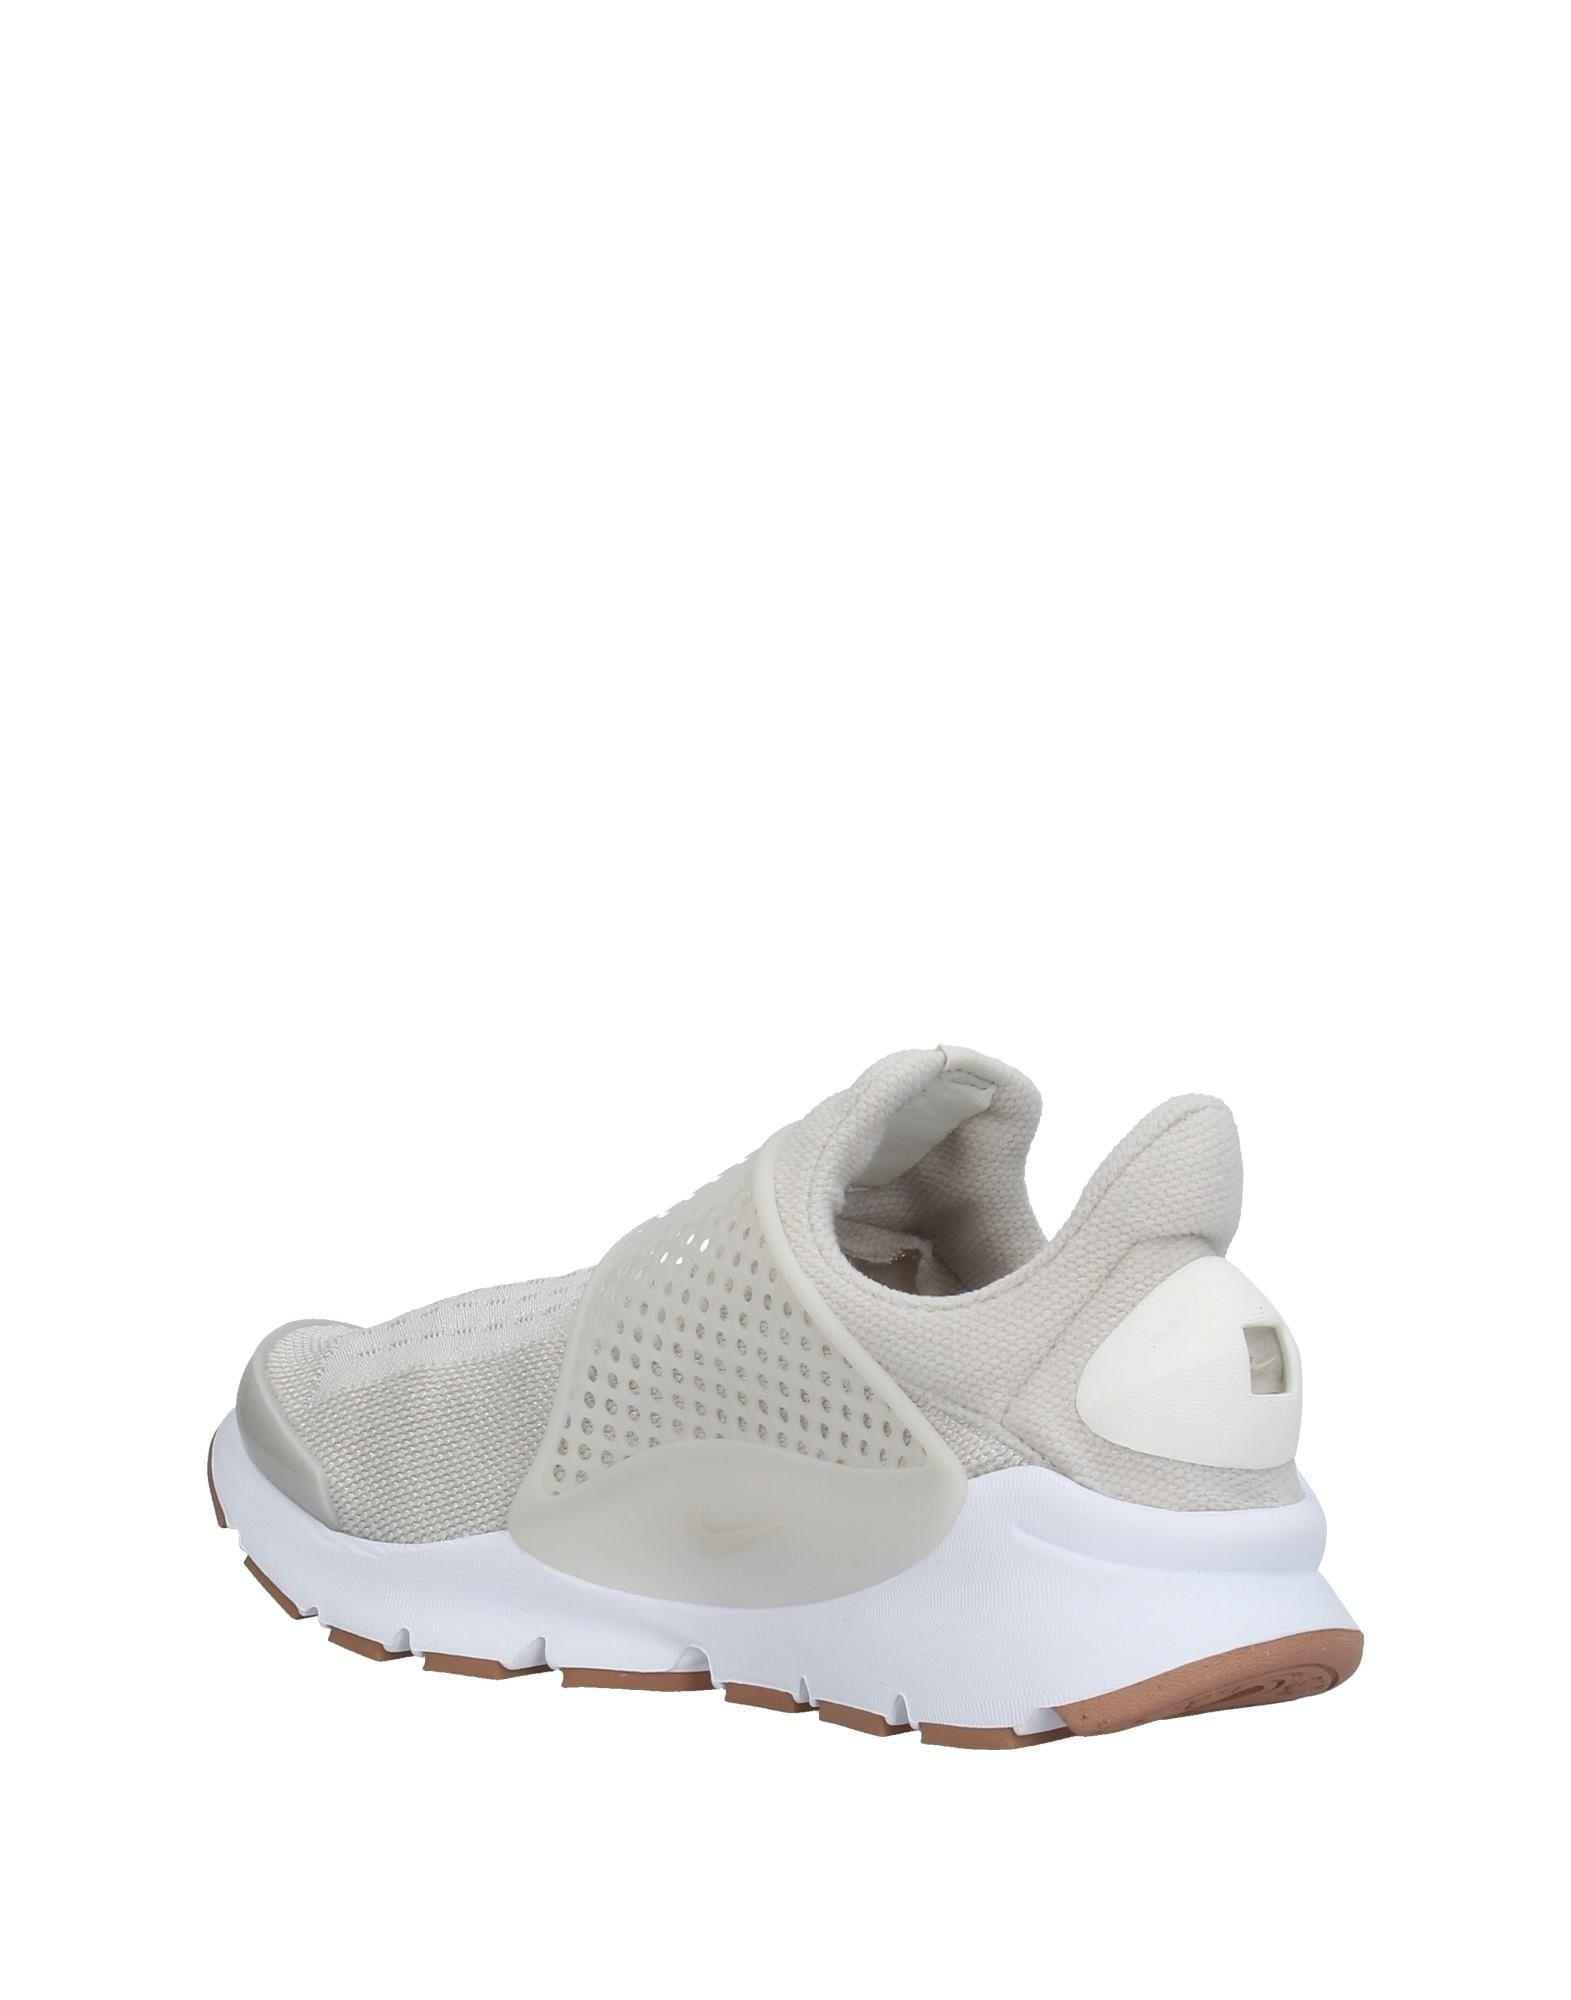 bfaebe45ad85 Nike Low-tops   Sneakers in Natural - Lyst